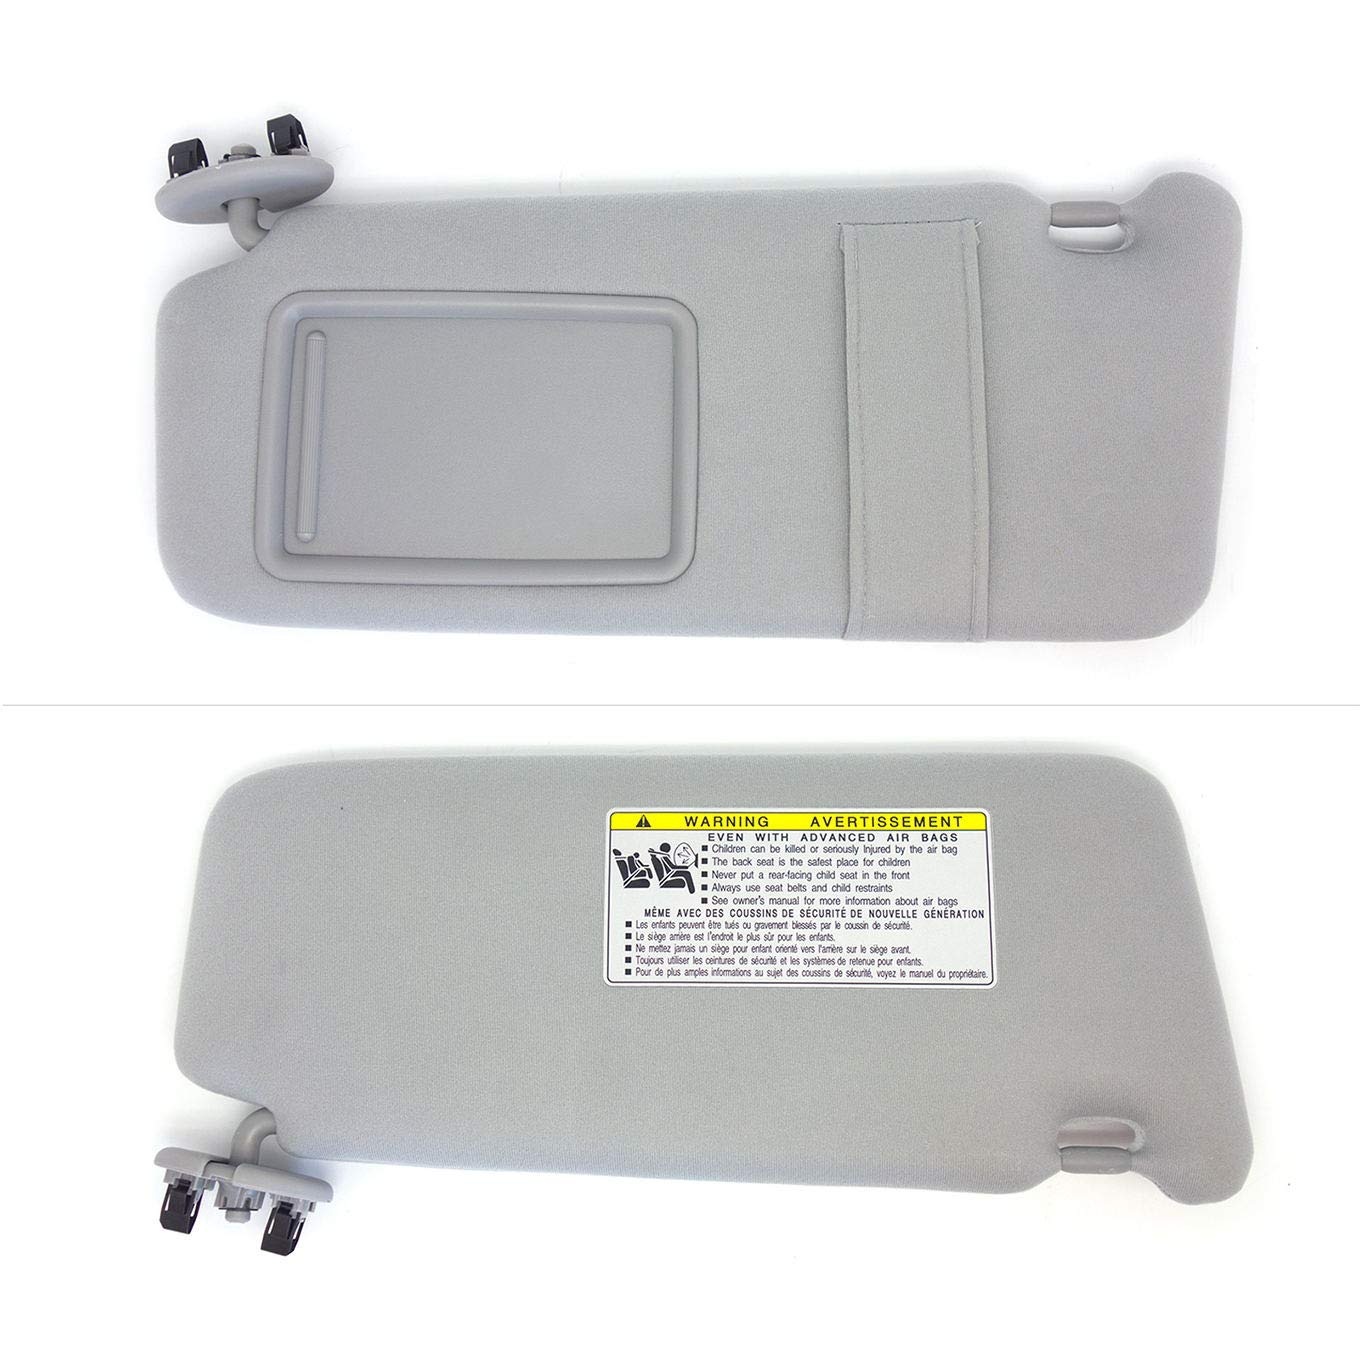 KOXUYIM Left Driver Side Windshield Sun Visor Mirror Replacement Part #74320-06780-B0 Visor Assembly Gray Fit for Toyota Camry 2007-2011 Without Sunroof and Light Left